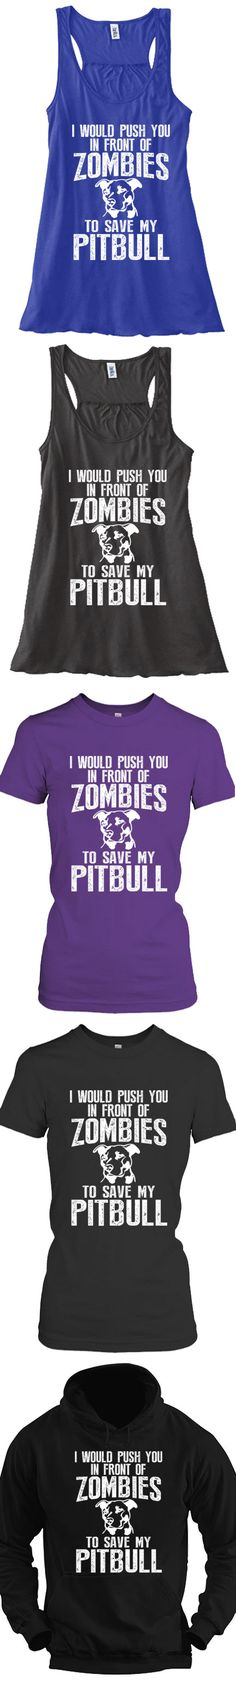 Love Your Pitbull?Then Click The Image To Buy It Now or Tag Someone You Want To Buy This For.